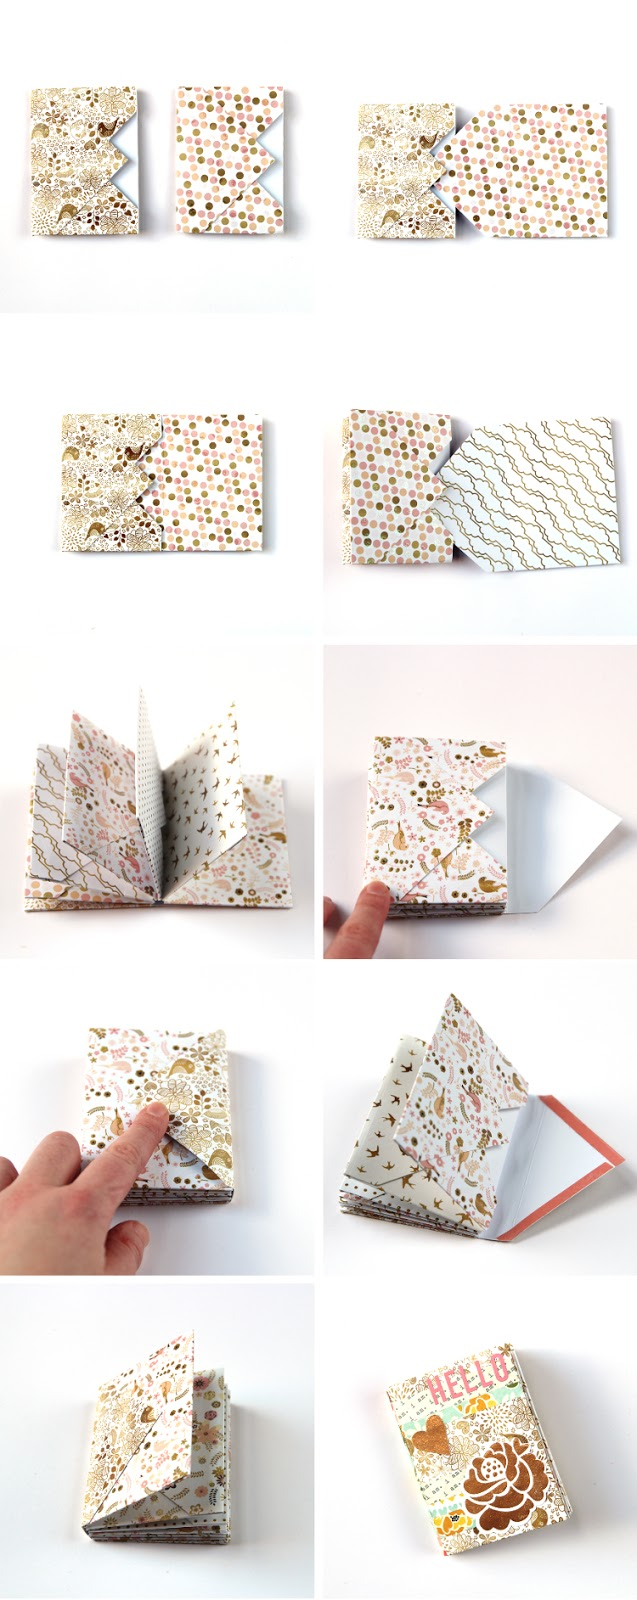 HOW TO MAKE A DIY MINI ENVELOPE ALBUM